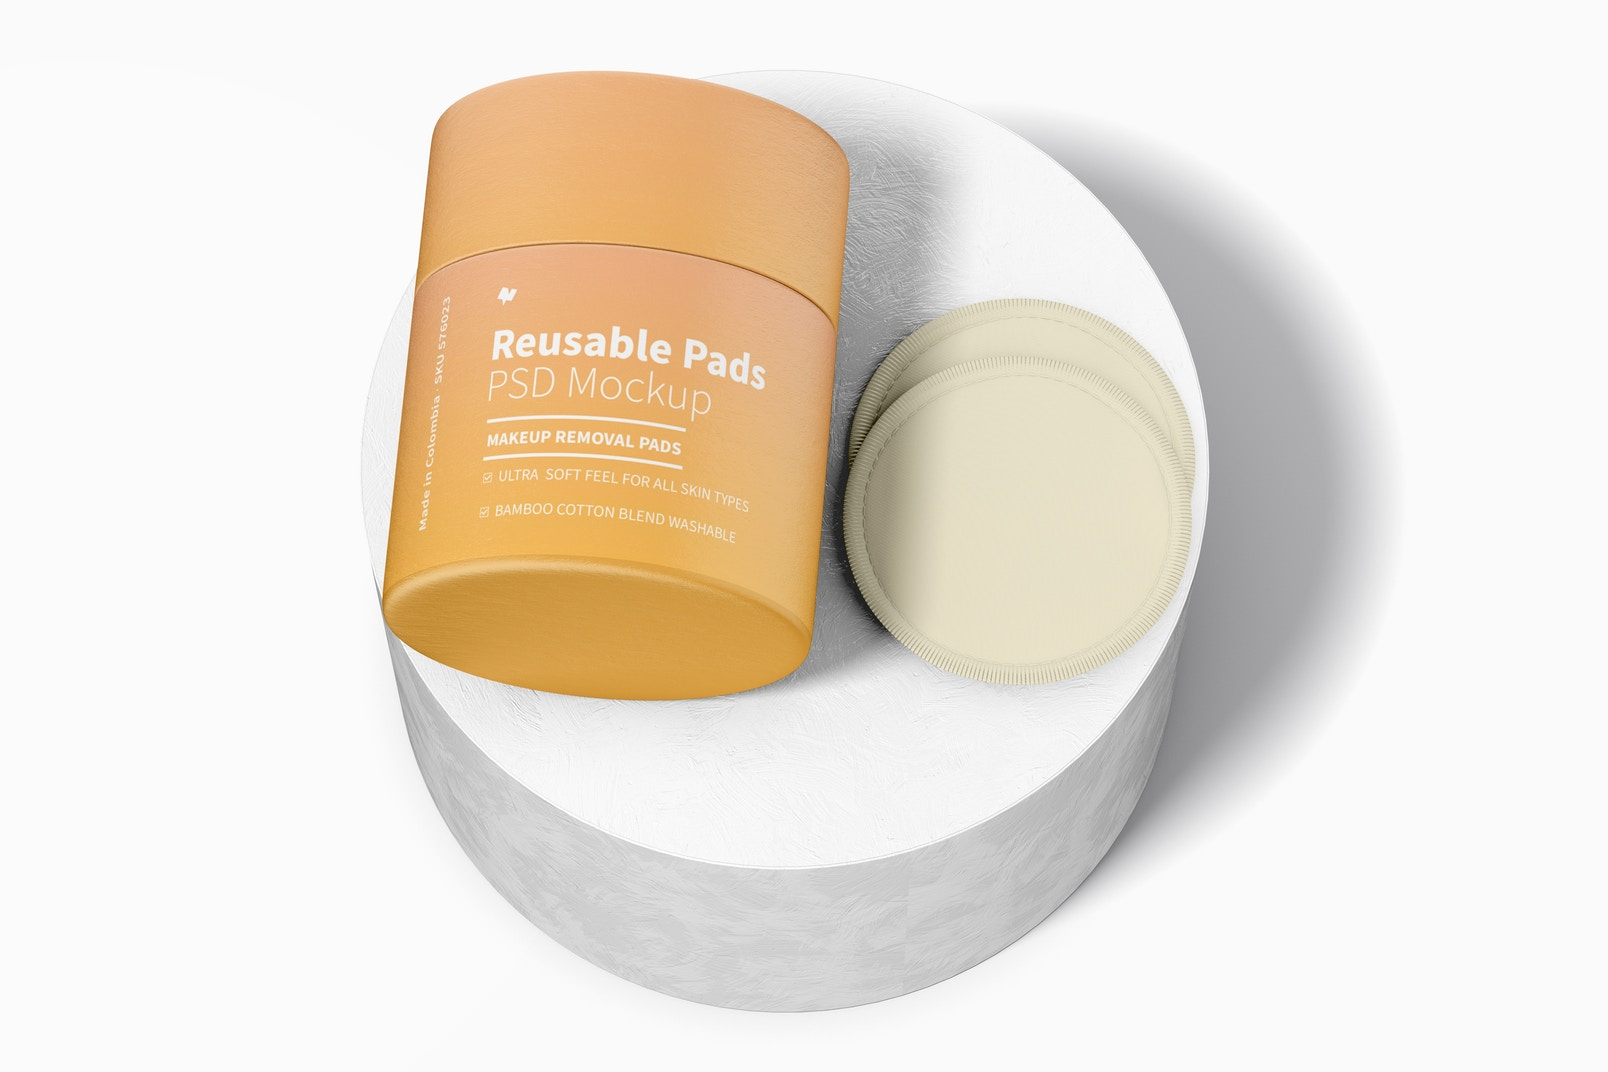 Reusable Pads Packaging Mockup, Perspective View